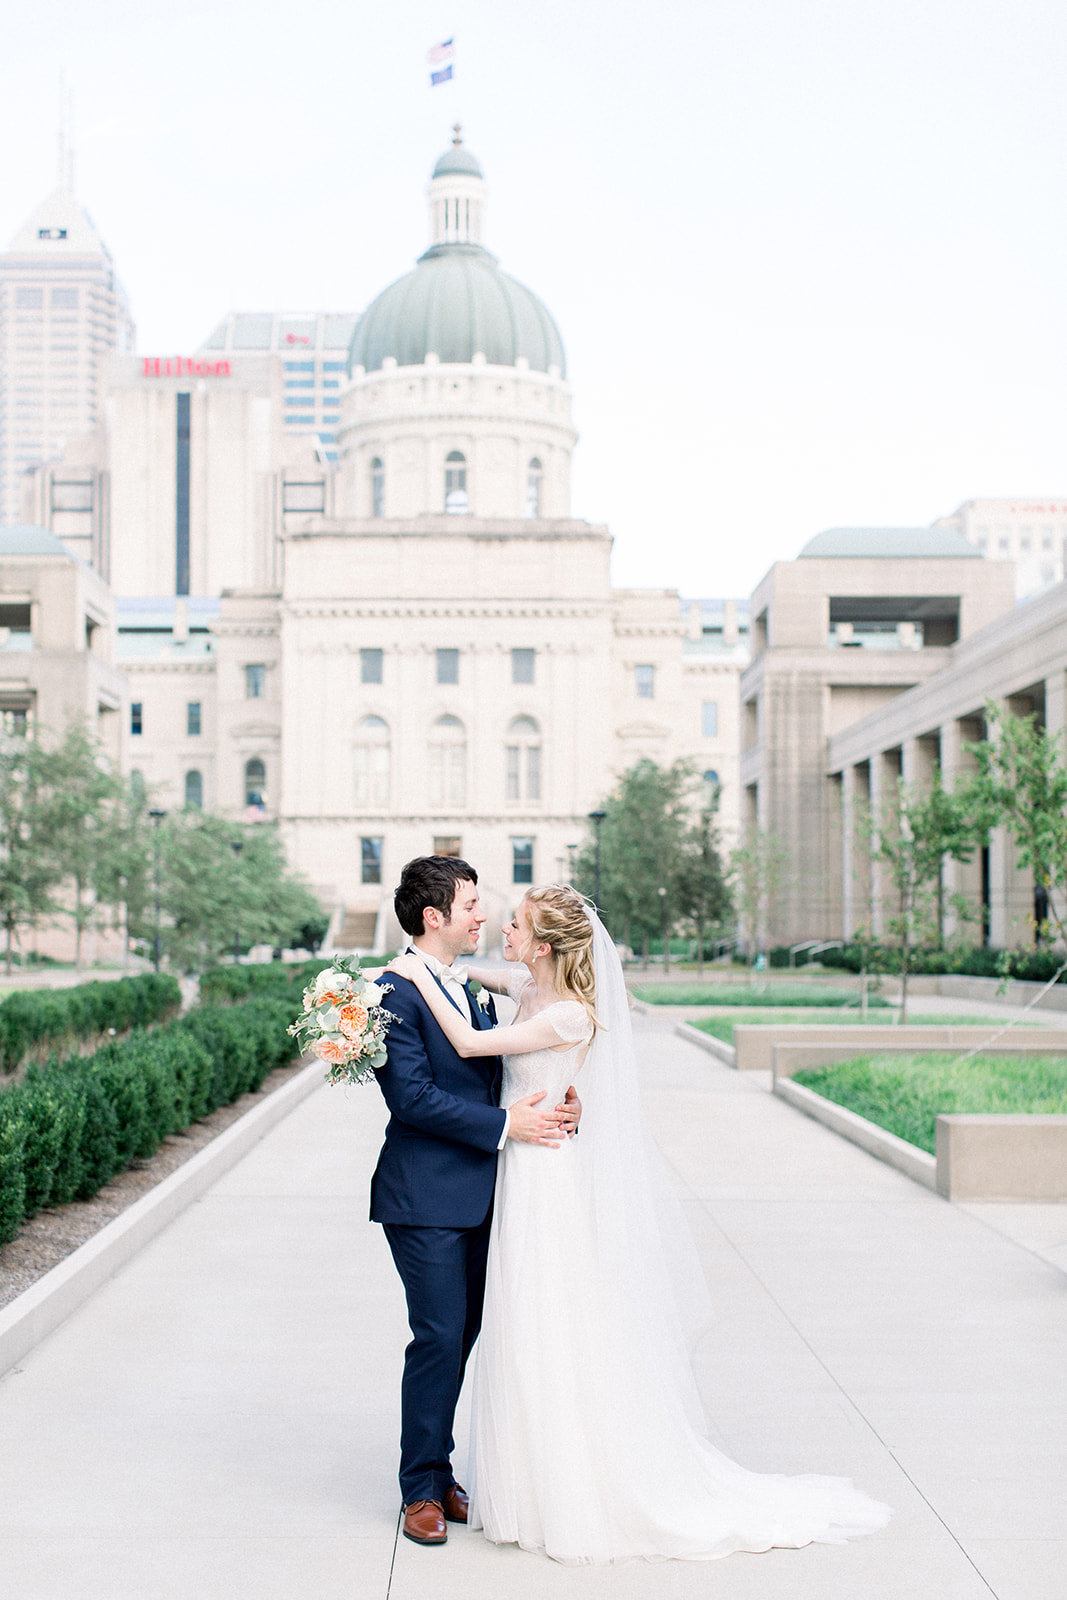 Lisa+Chris-indianapolis-wedding-jenn-plumlee-photography22